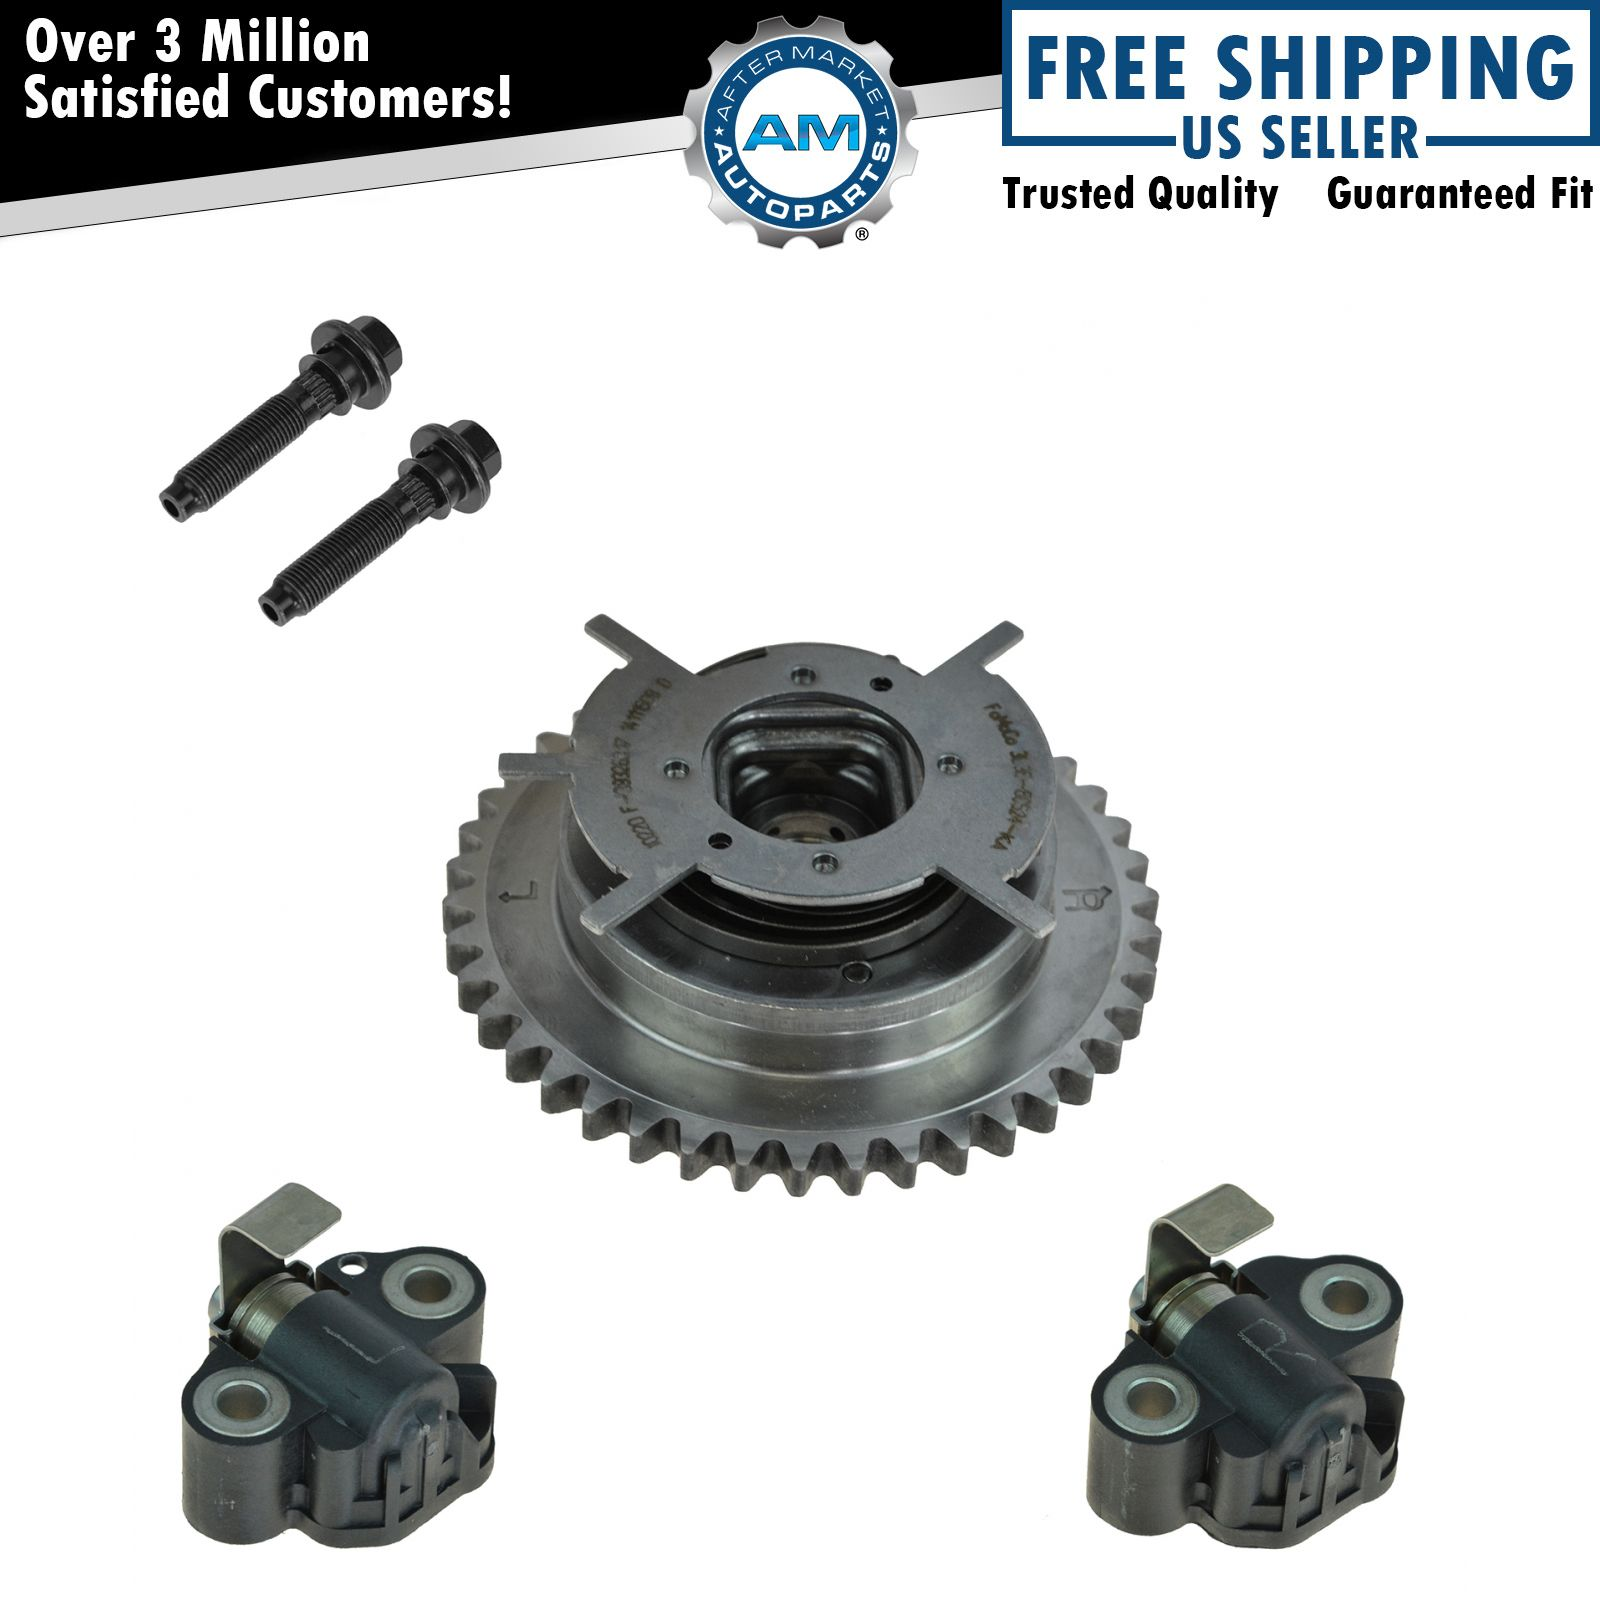 OEM Timing Chain Tensioner & Cam Phaser Set For Ford